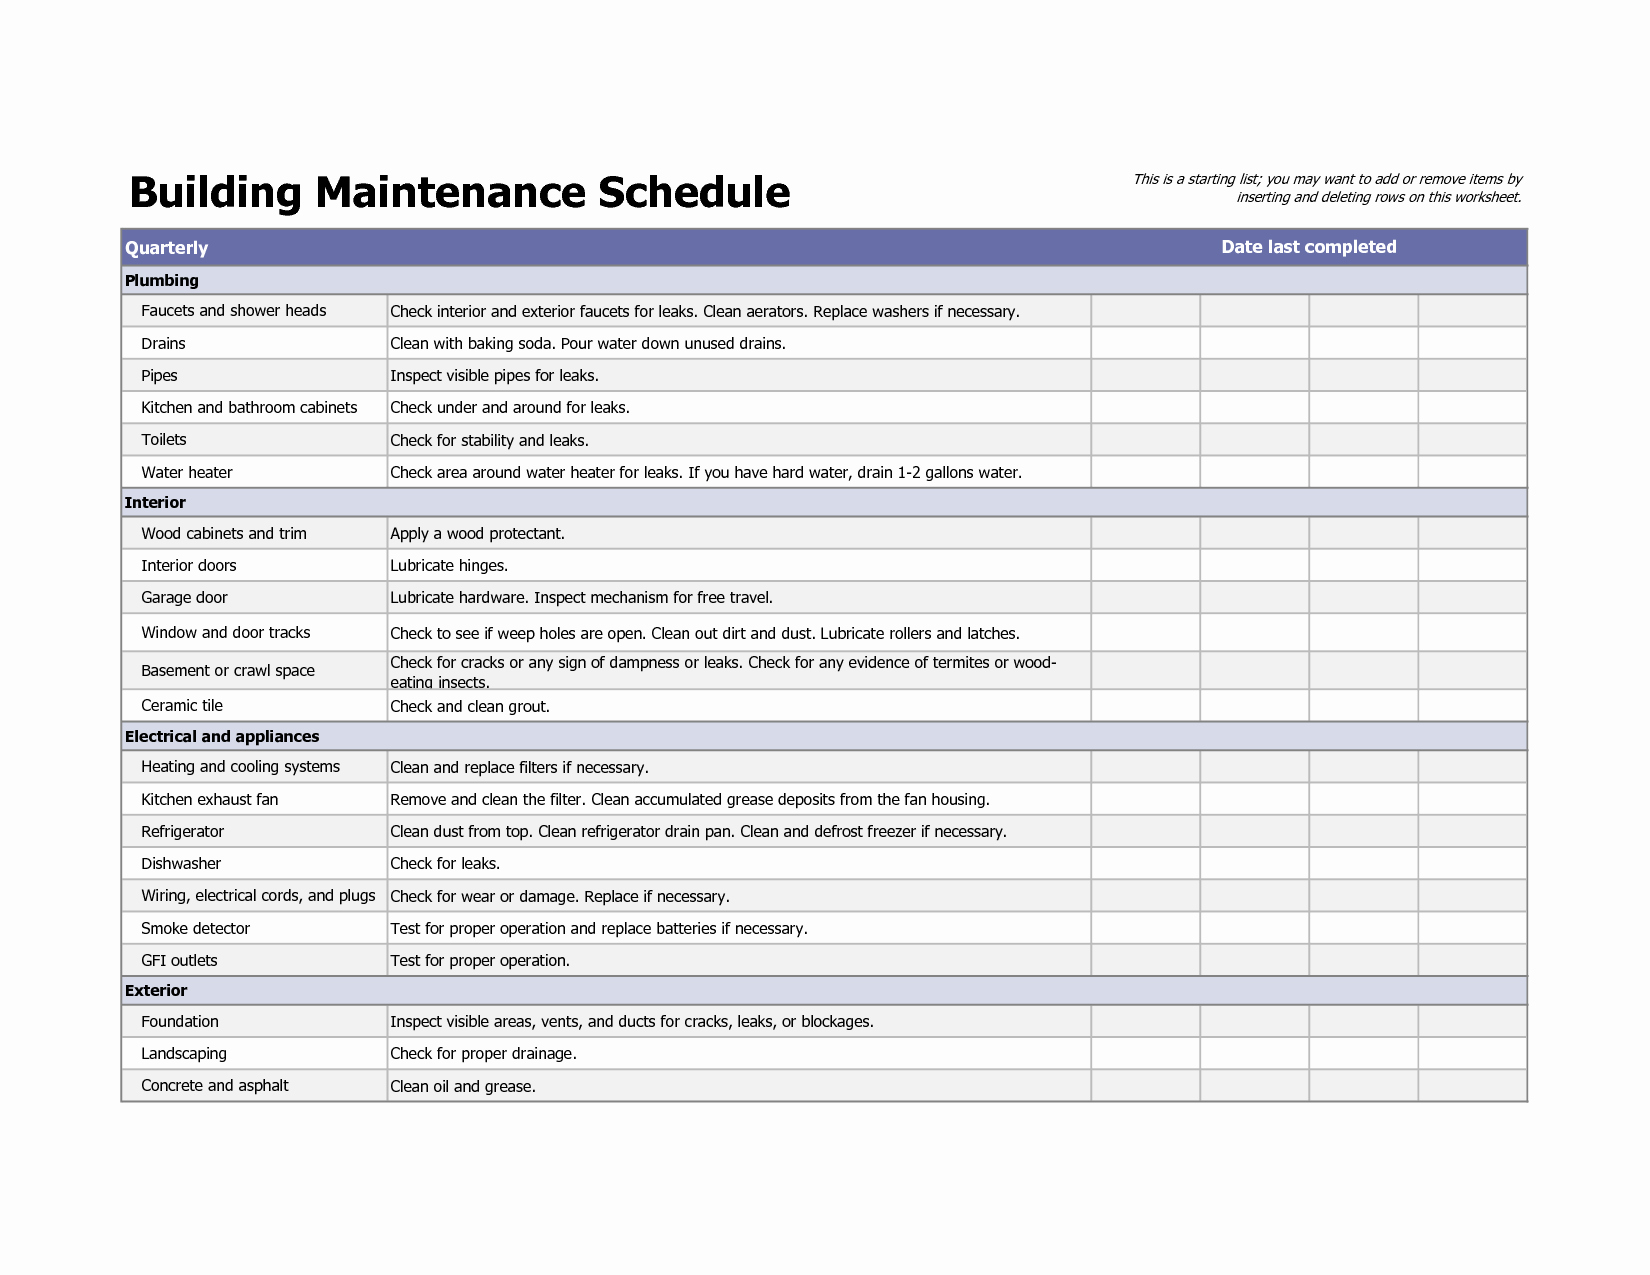 Preventive Maintenance Schedule Template Excel Best Of Building Maintenance Schedule Excel Template